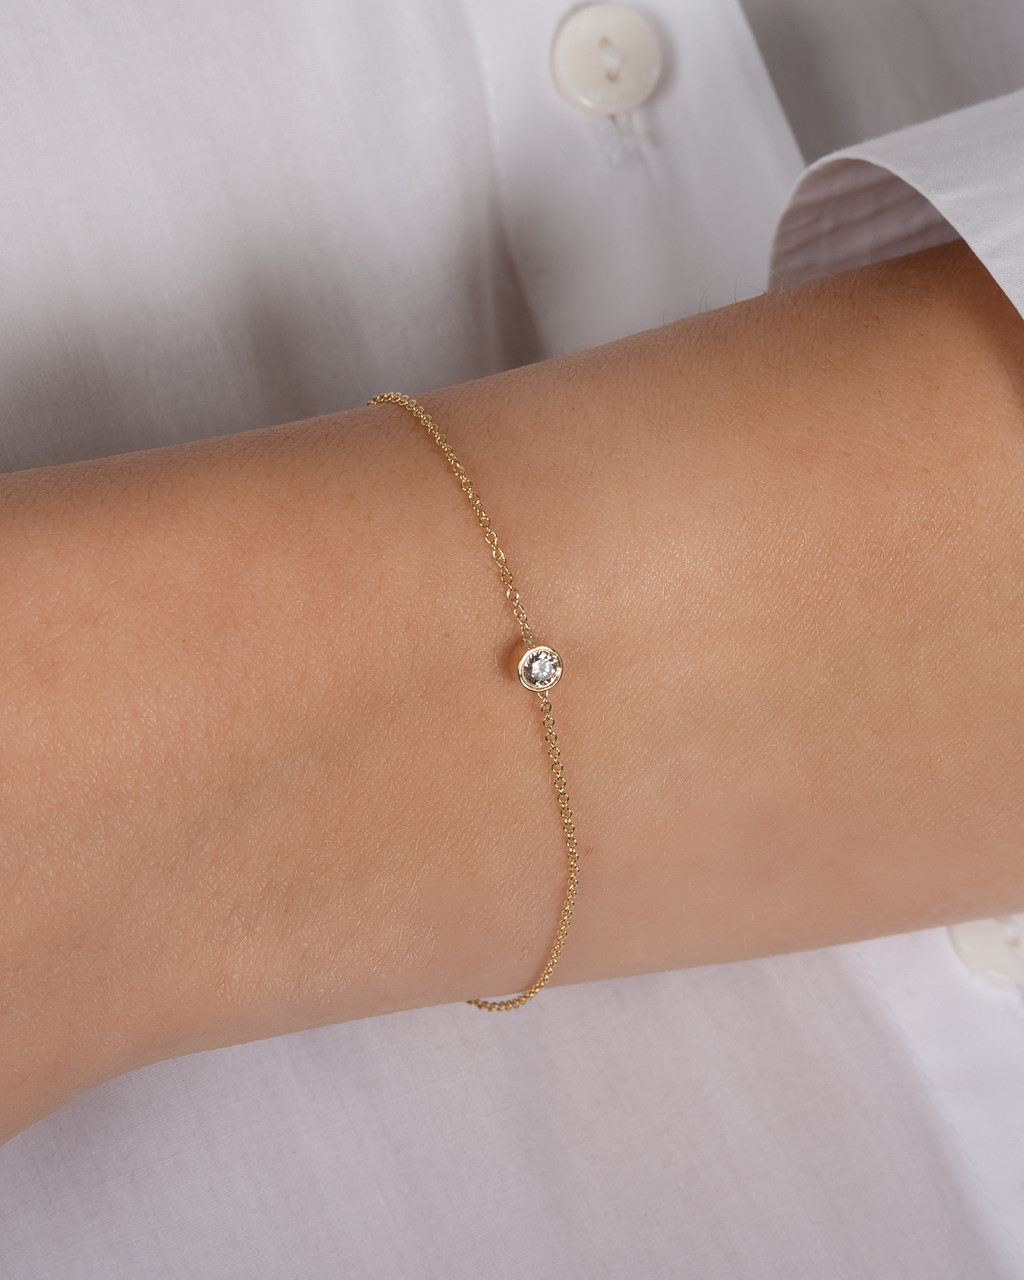 Large Bezel Diamond Bracelet